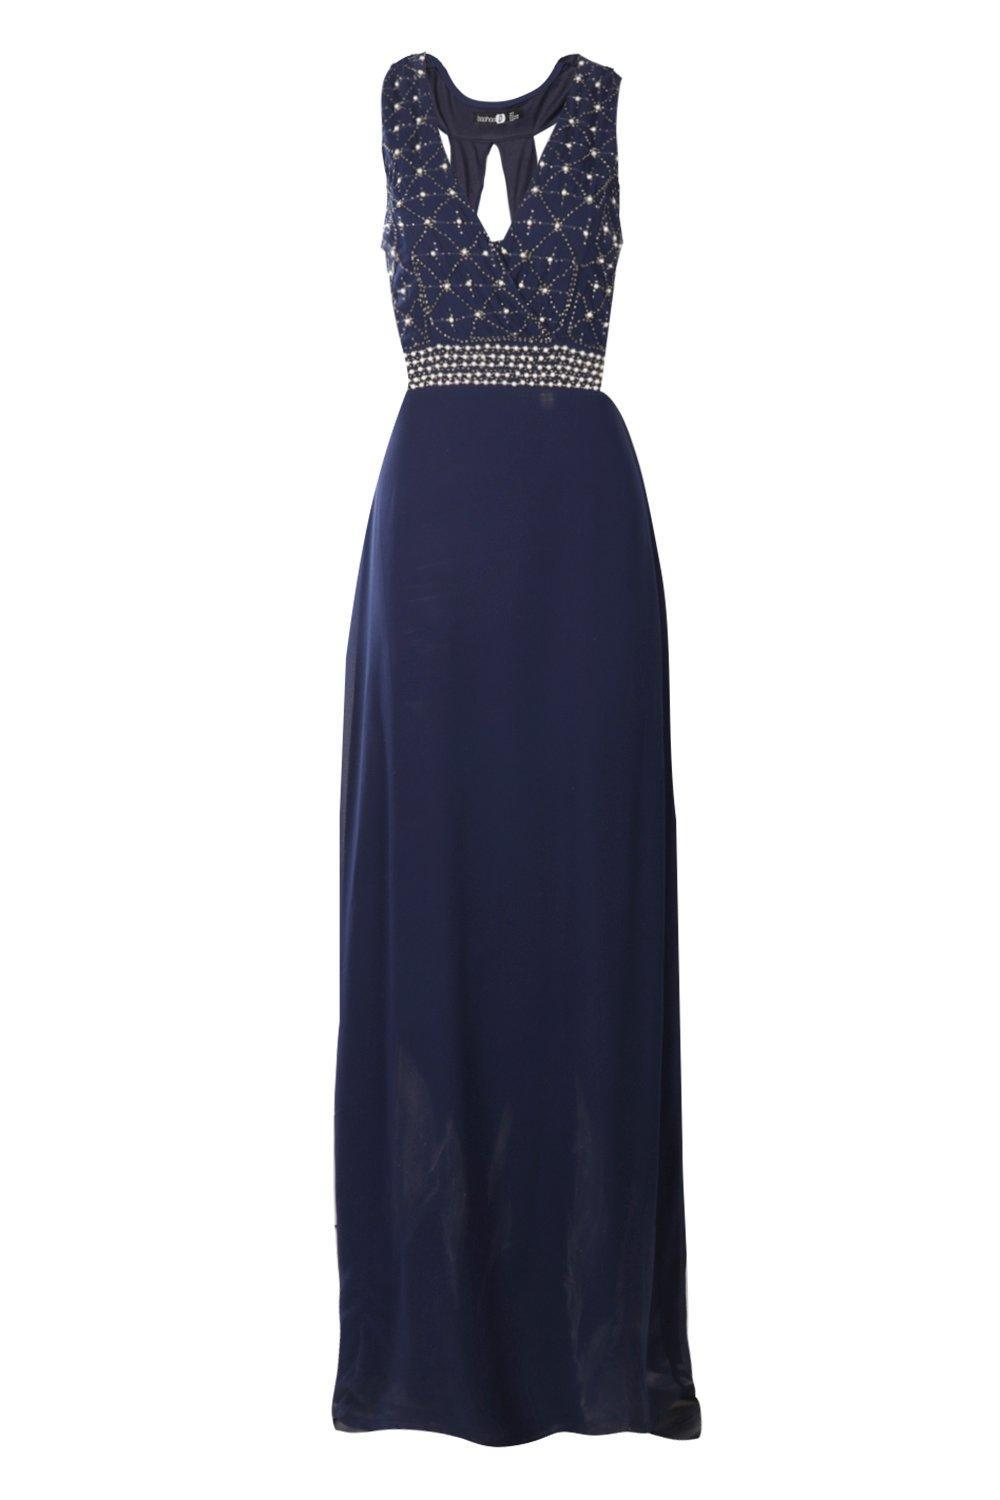 4f1145d4cba5 Boohoo Boutique Cat Pearl Embellished Maxi Dress in Blue - Lyst